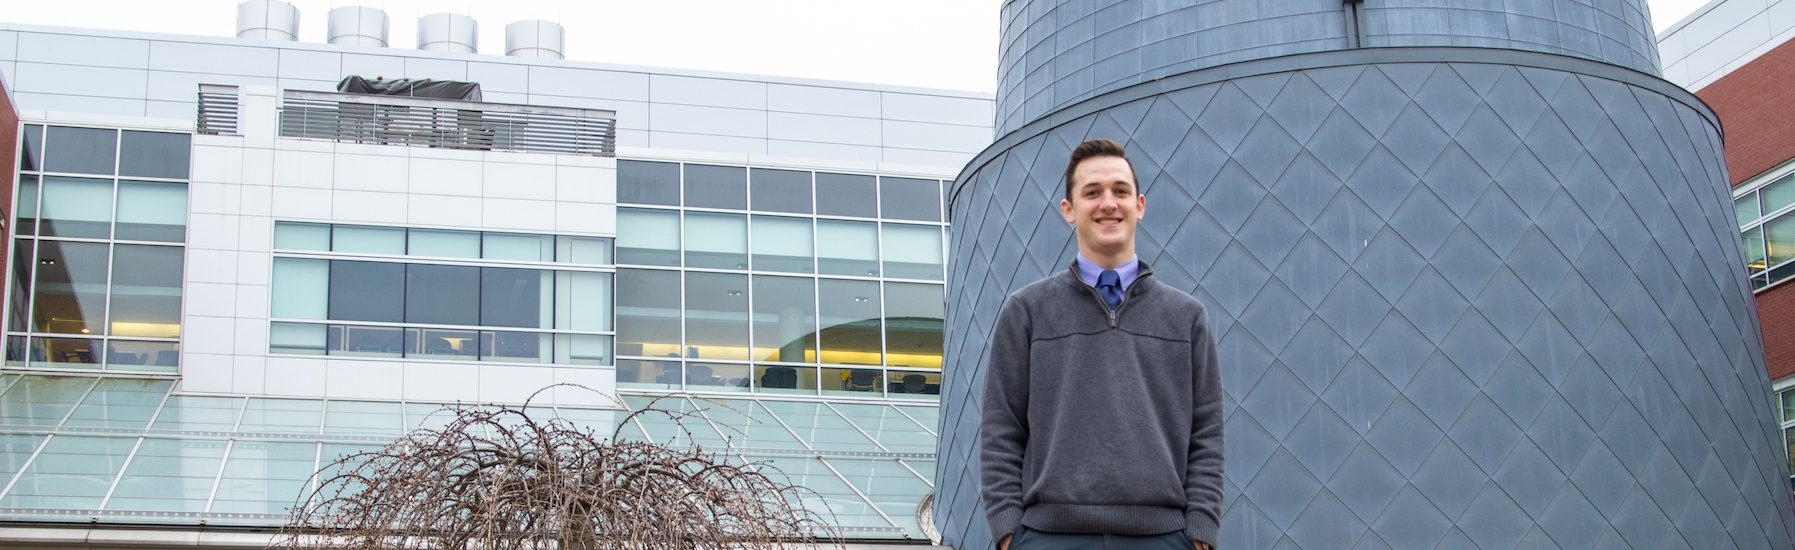 Andrew, a Translational Biomedical Sciences major at Rowan University, outside Science Hall.